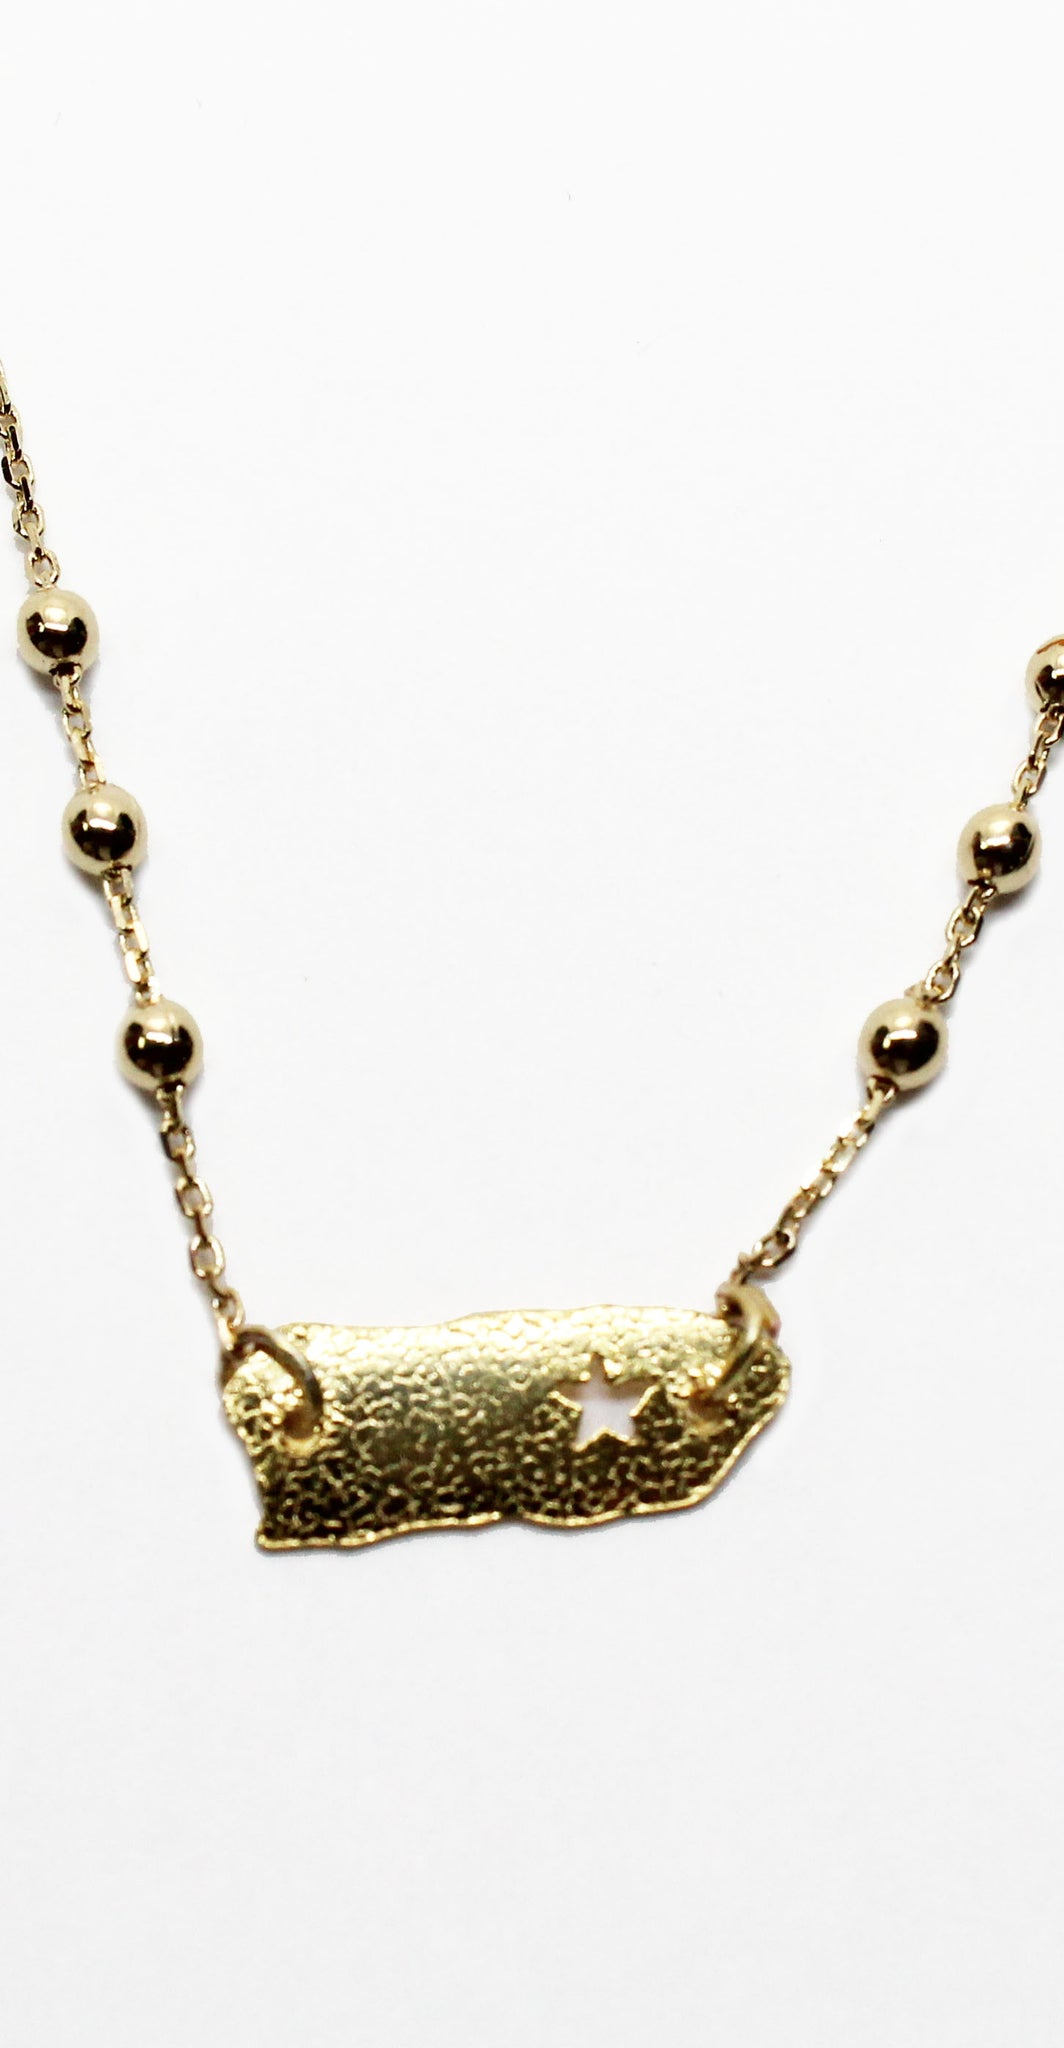 I'm from 100 x 35 Island Gold Necklace